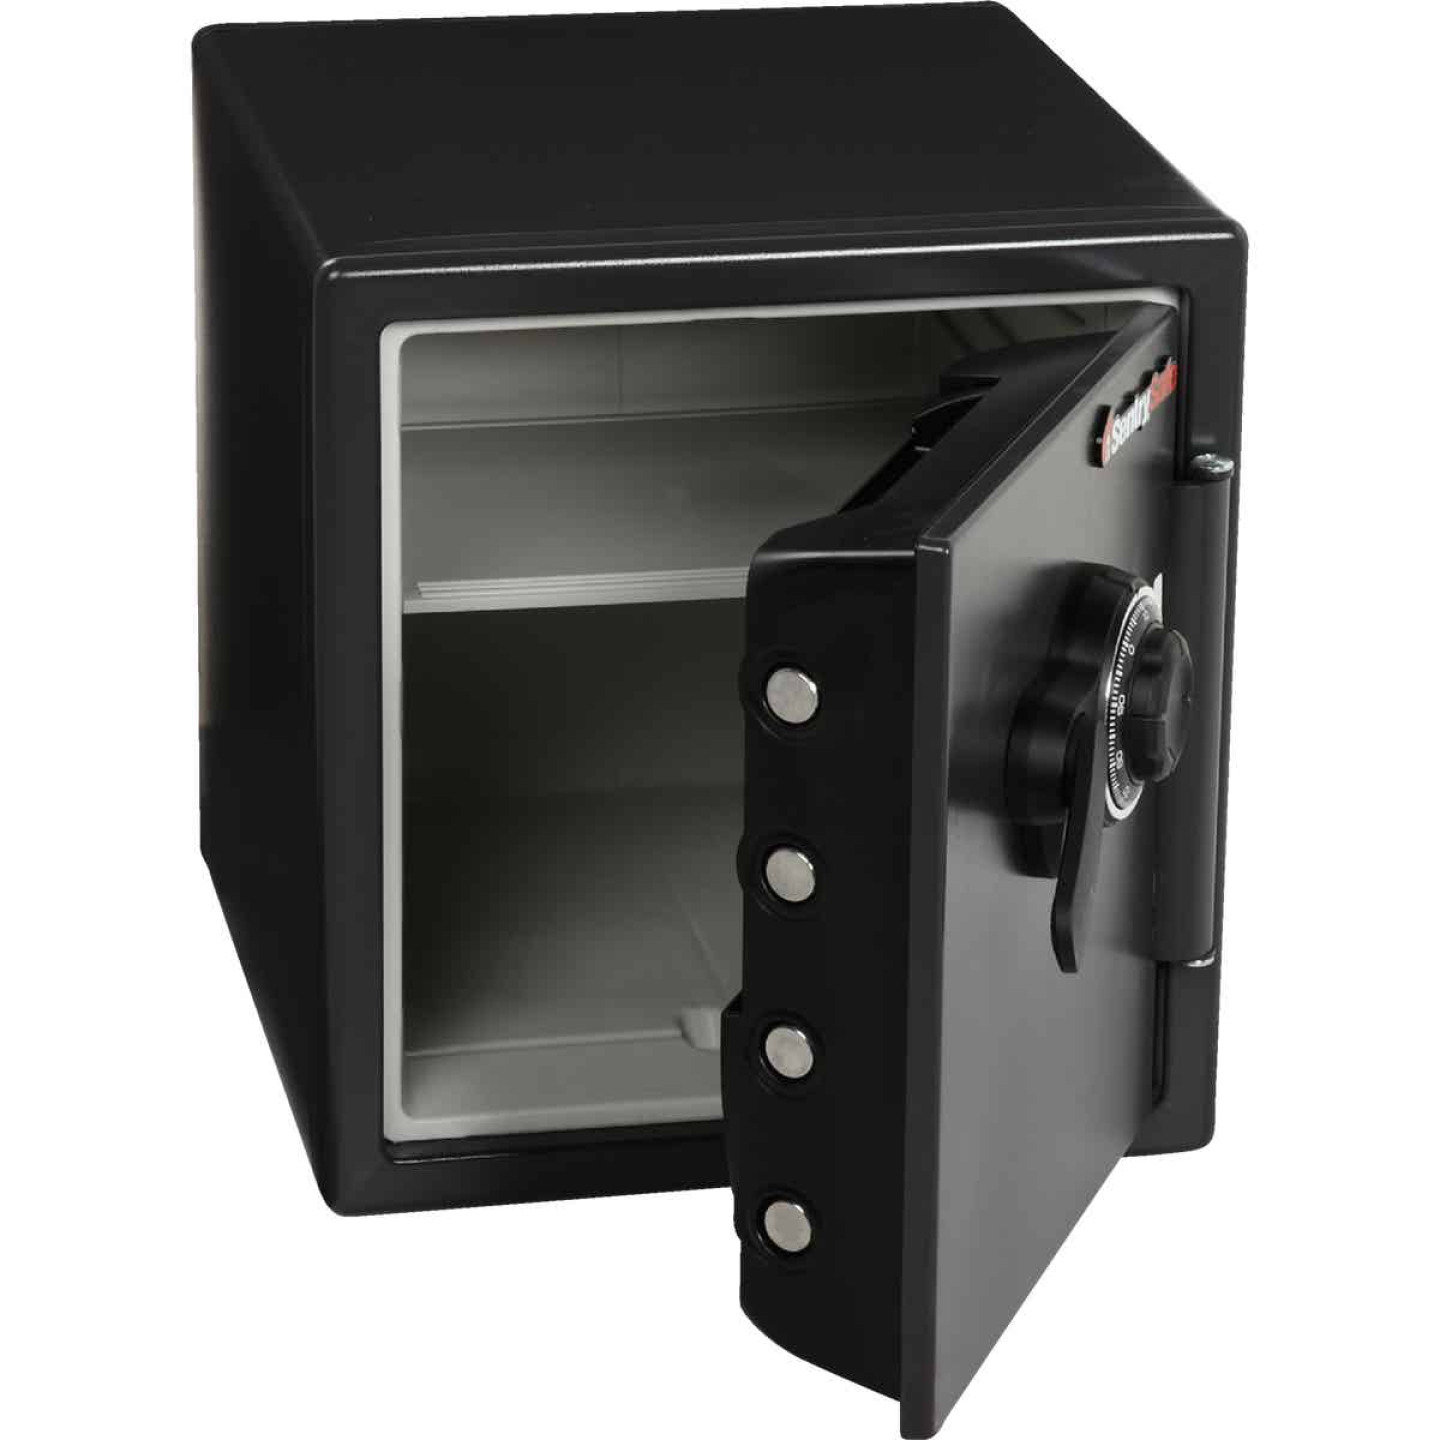 Sentry Safe 1.23 Cu. Ft. Capacity Combination Fire-Safe Floor Safe Image 3